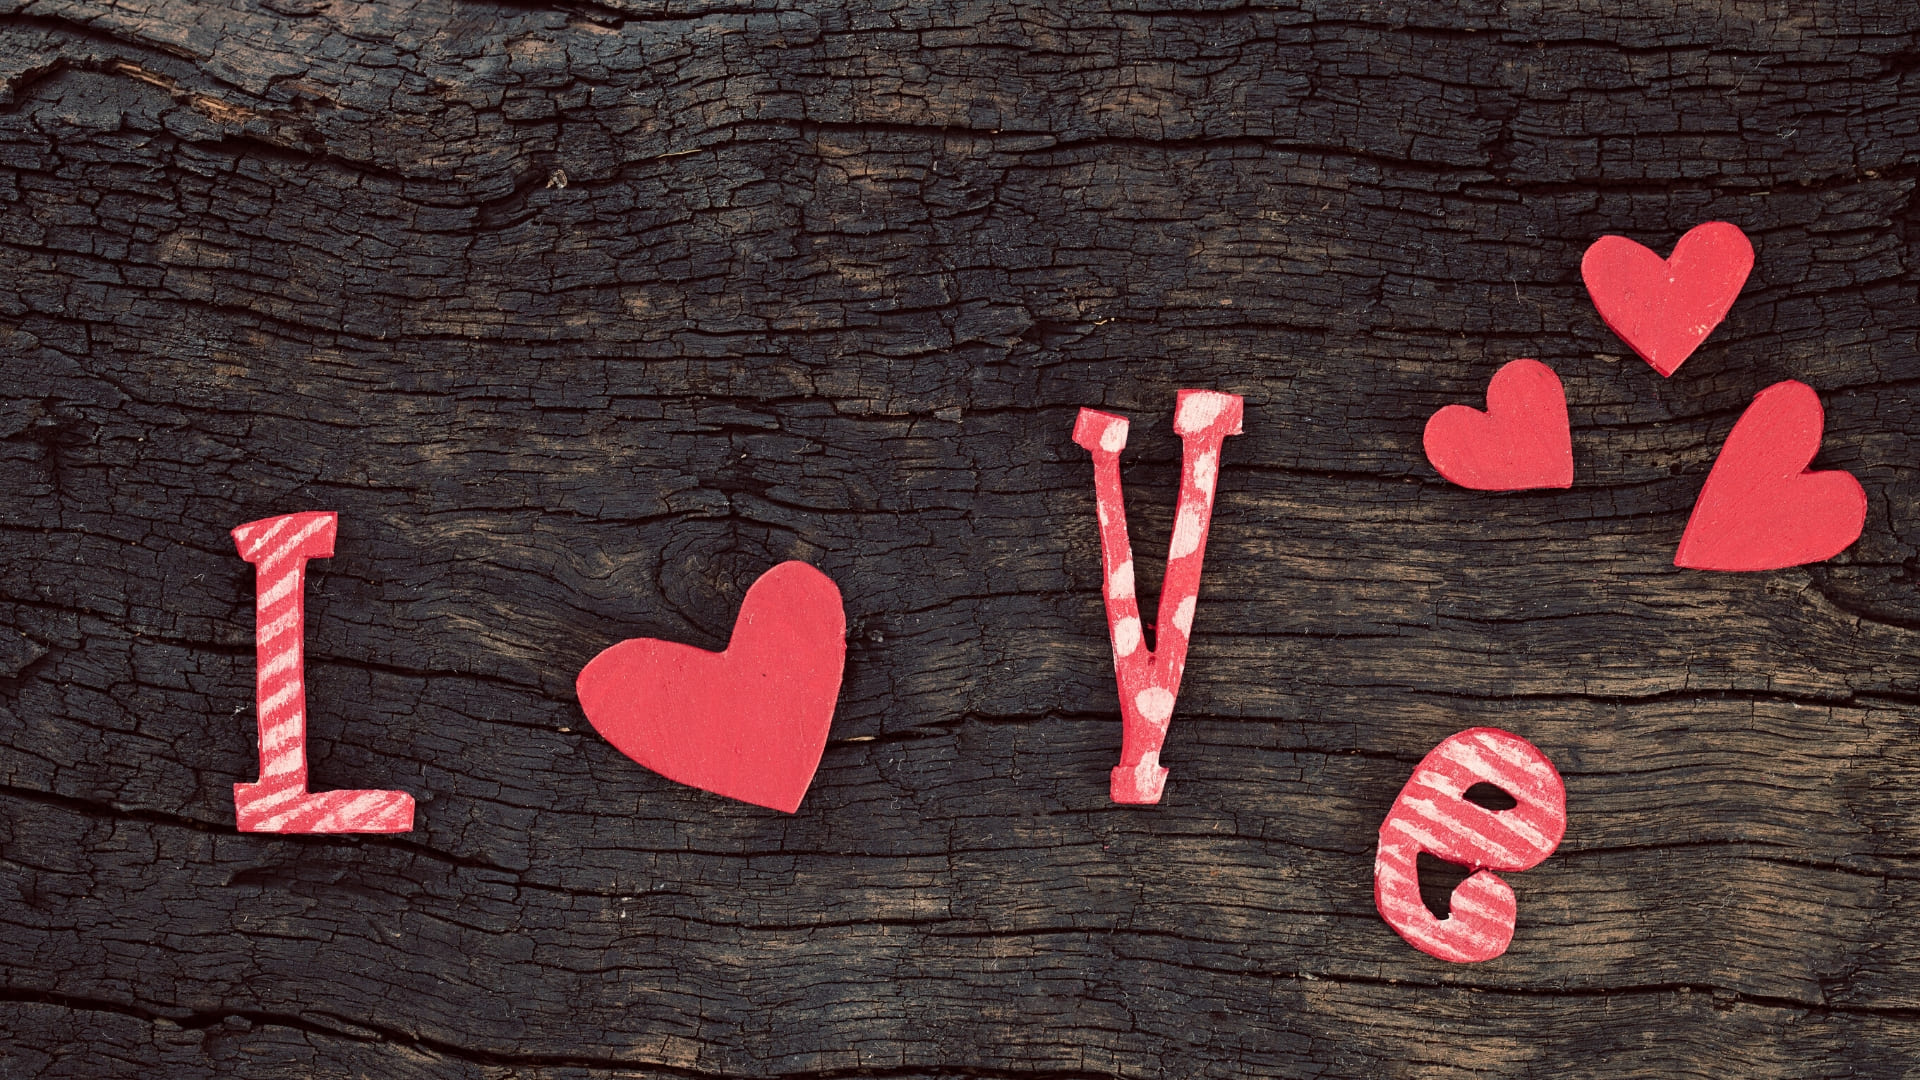 Love background images hd 1080p free download